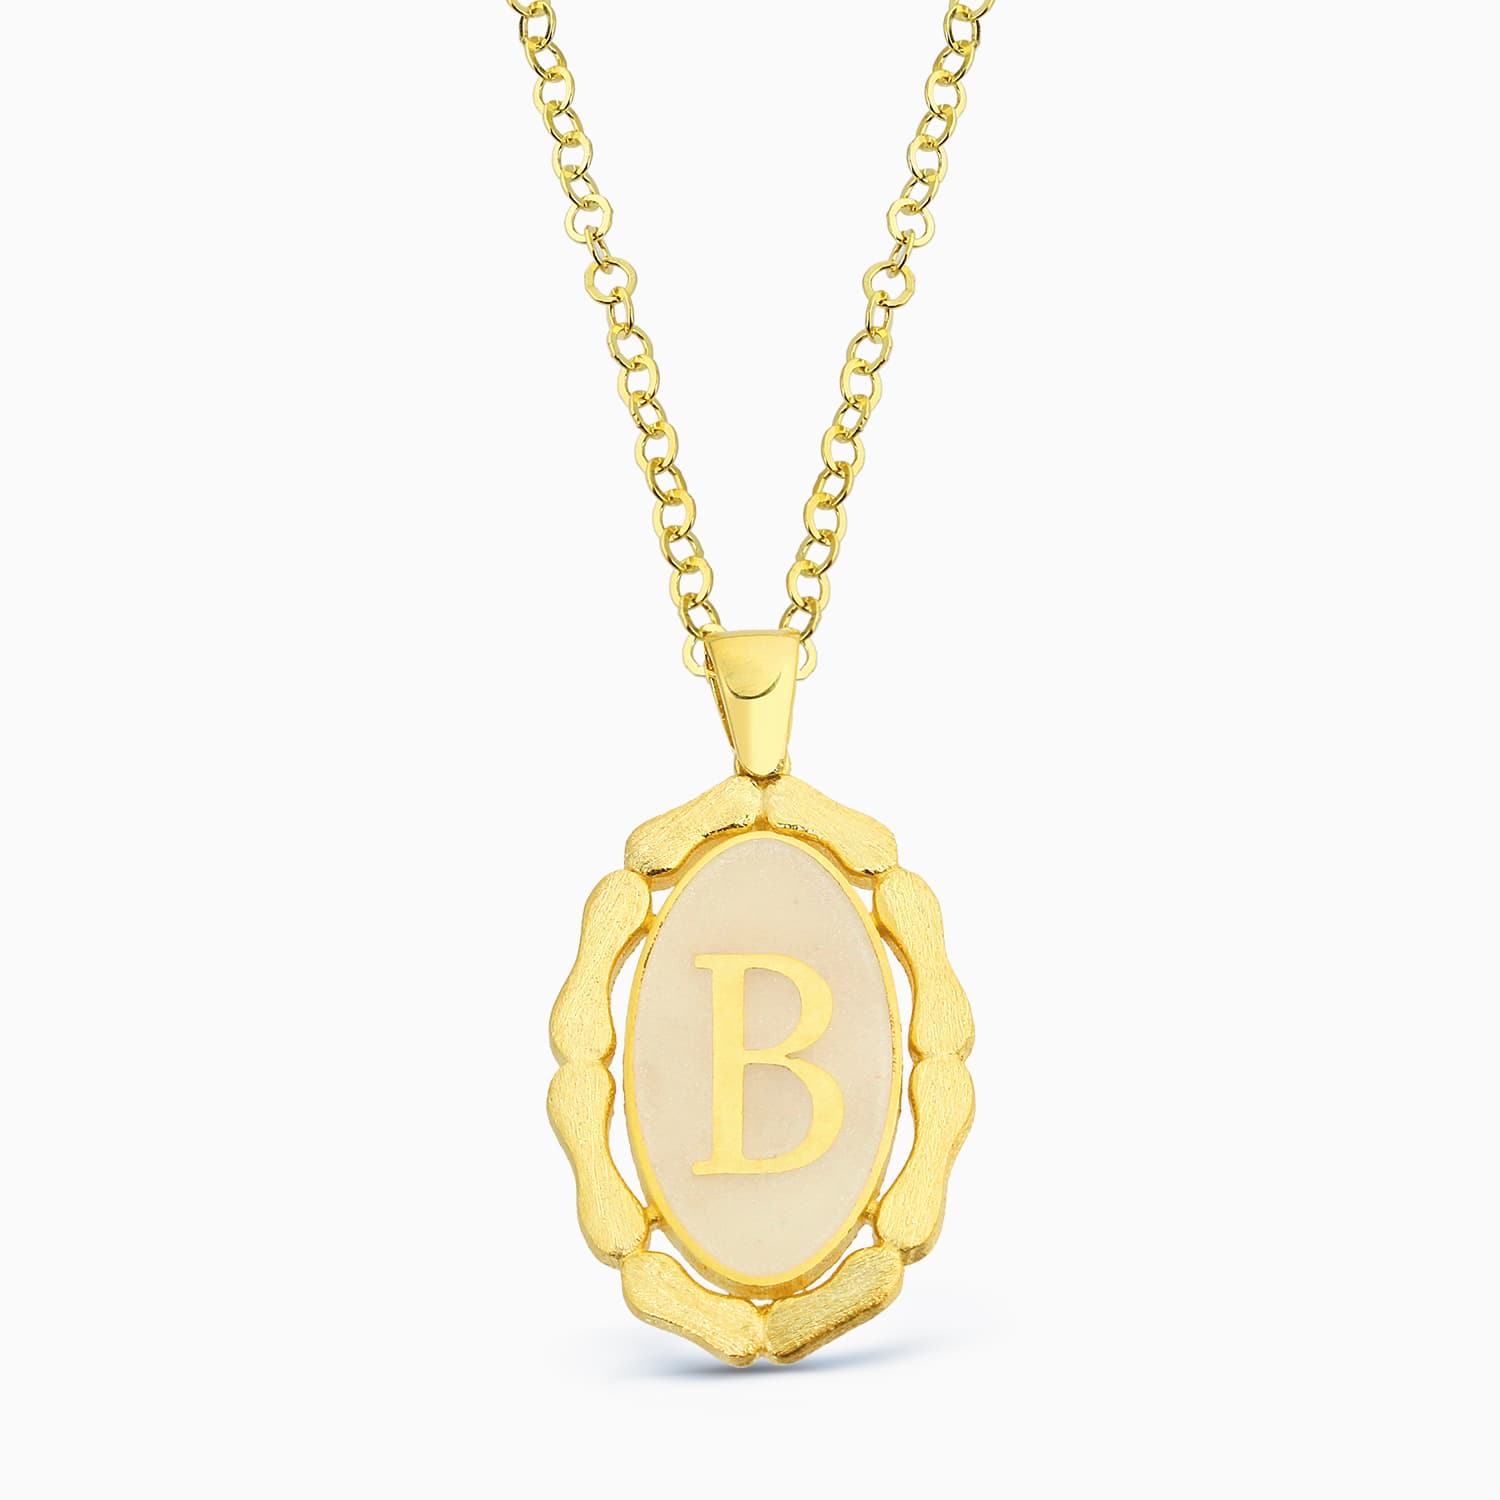 LETTER B MINNED NECKLACE